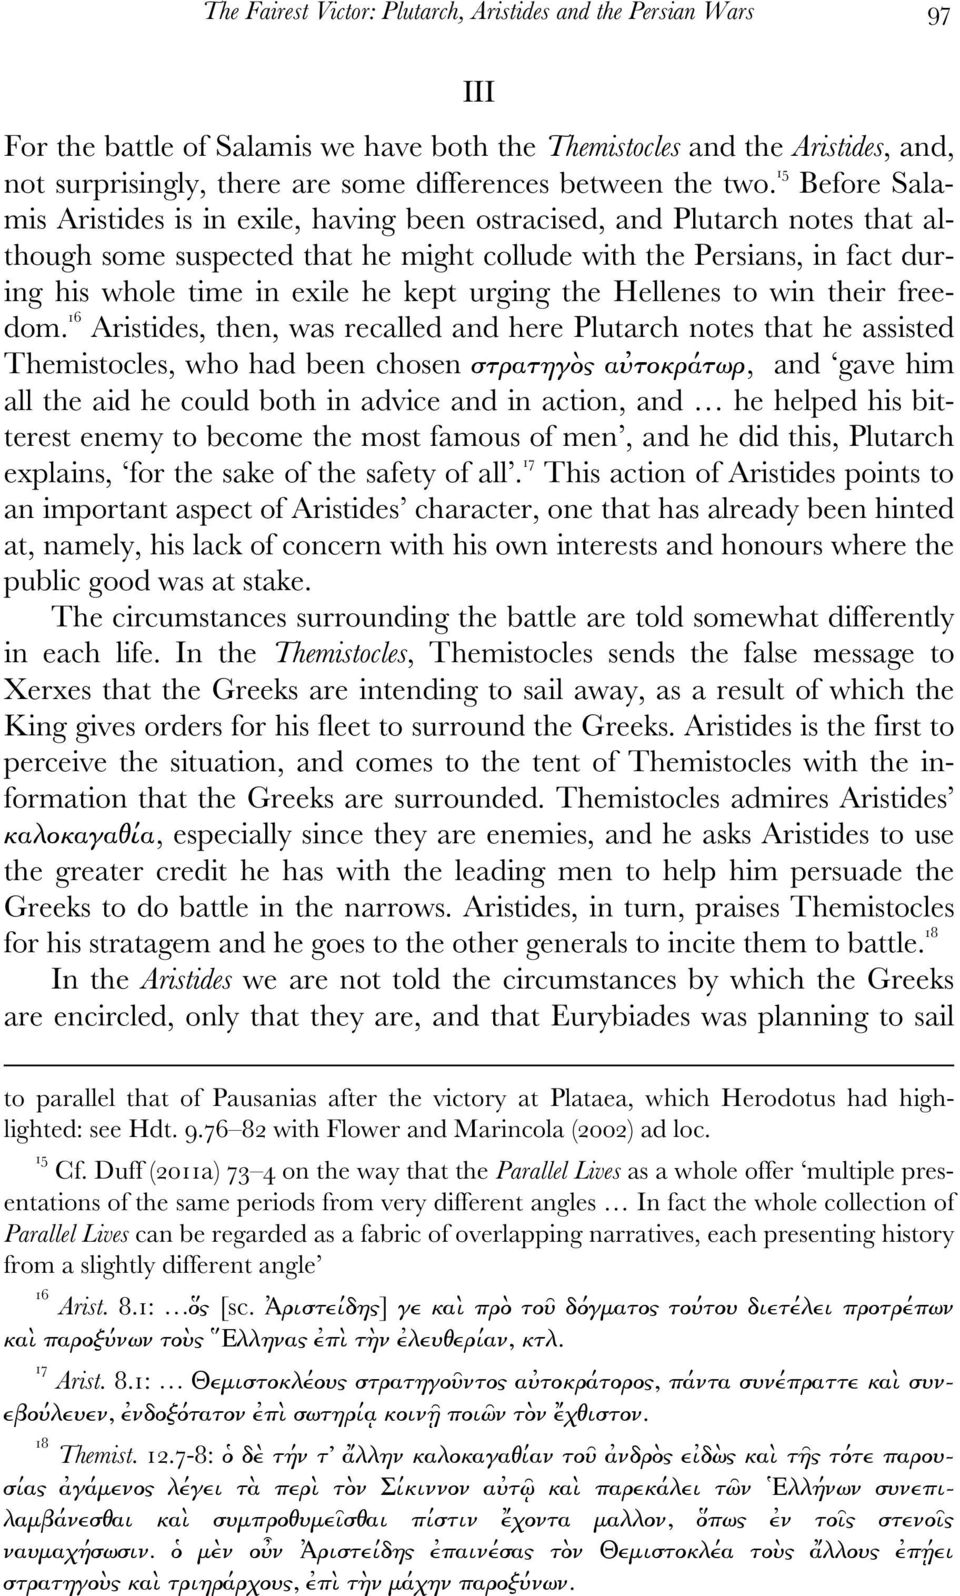 15 Before Salamis Aristides is in exile, having been ostracised, and Plutarch notes that although some suspected that he might collude with the Persians, in fact during his whole time in exile he